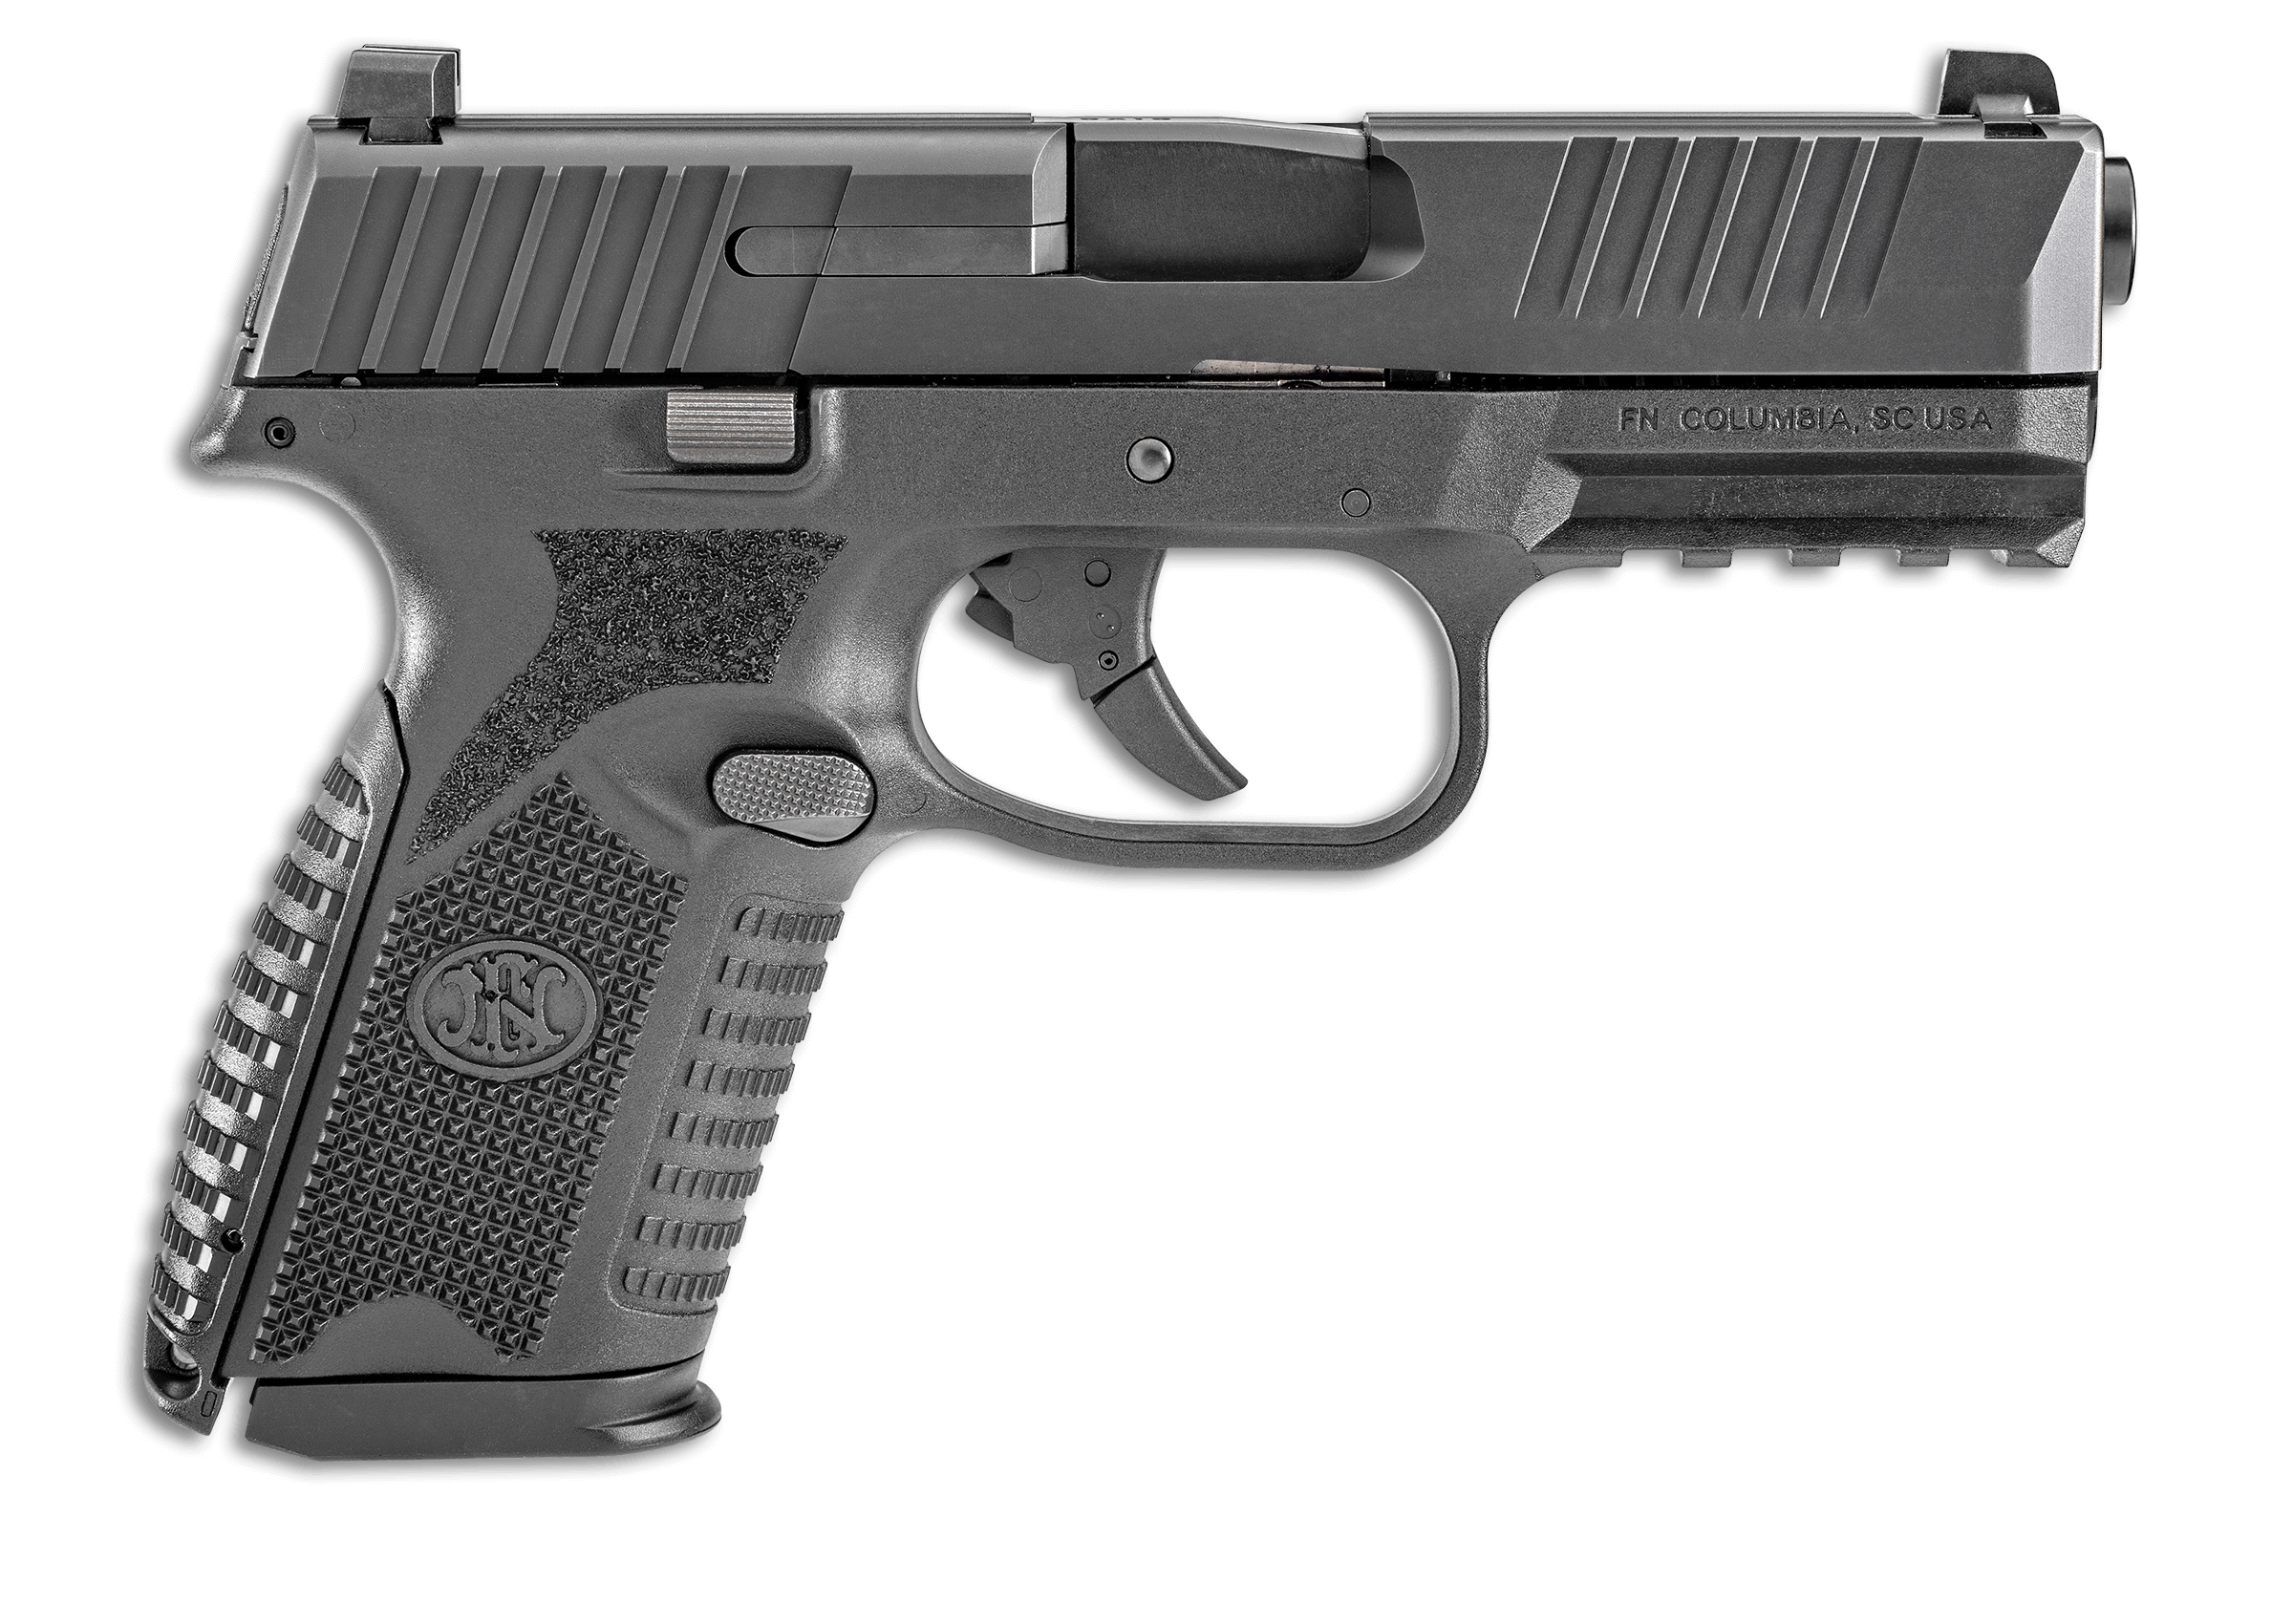 Weapon clip pistol. Police magazine fn expands